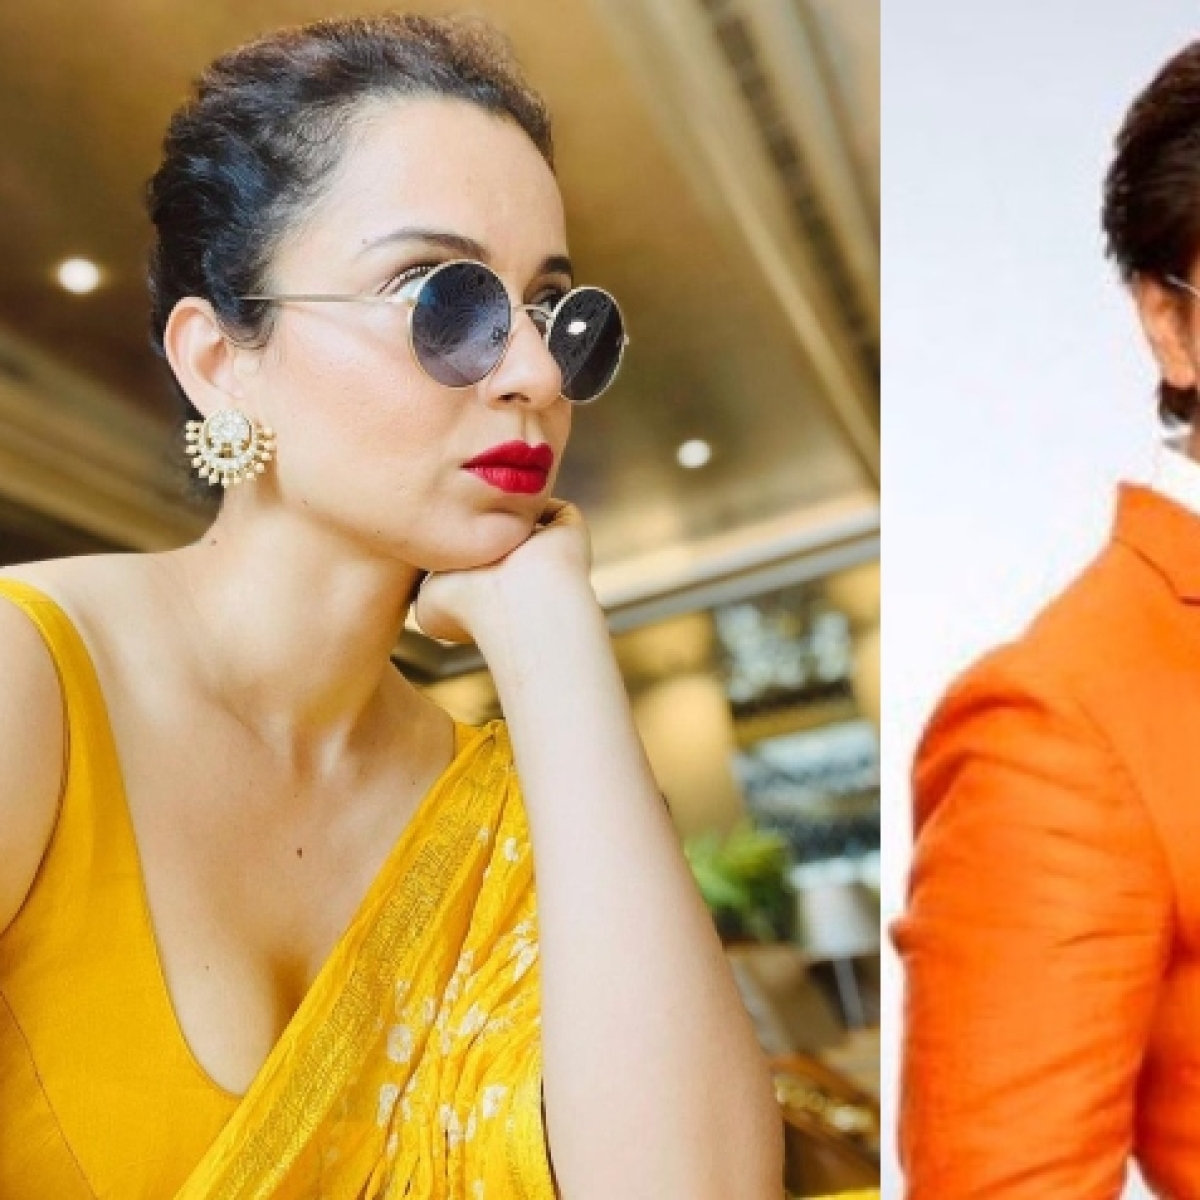 Kangana Ranaut trolled for comparing herself to Shah Rukh Khan; SRKians say 'his story is next level inspiring'